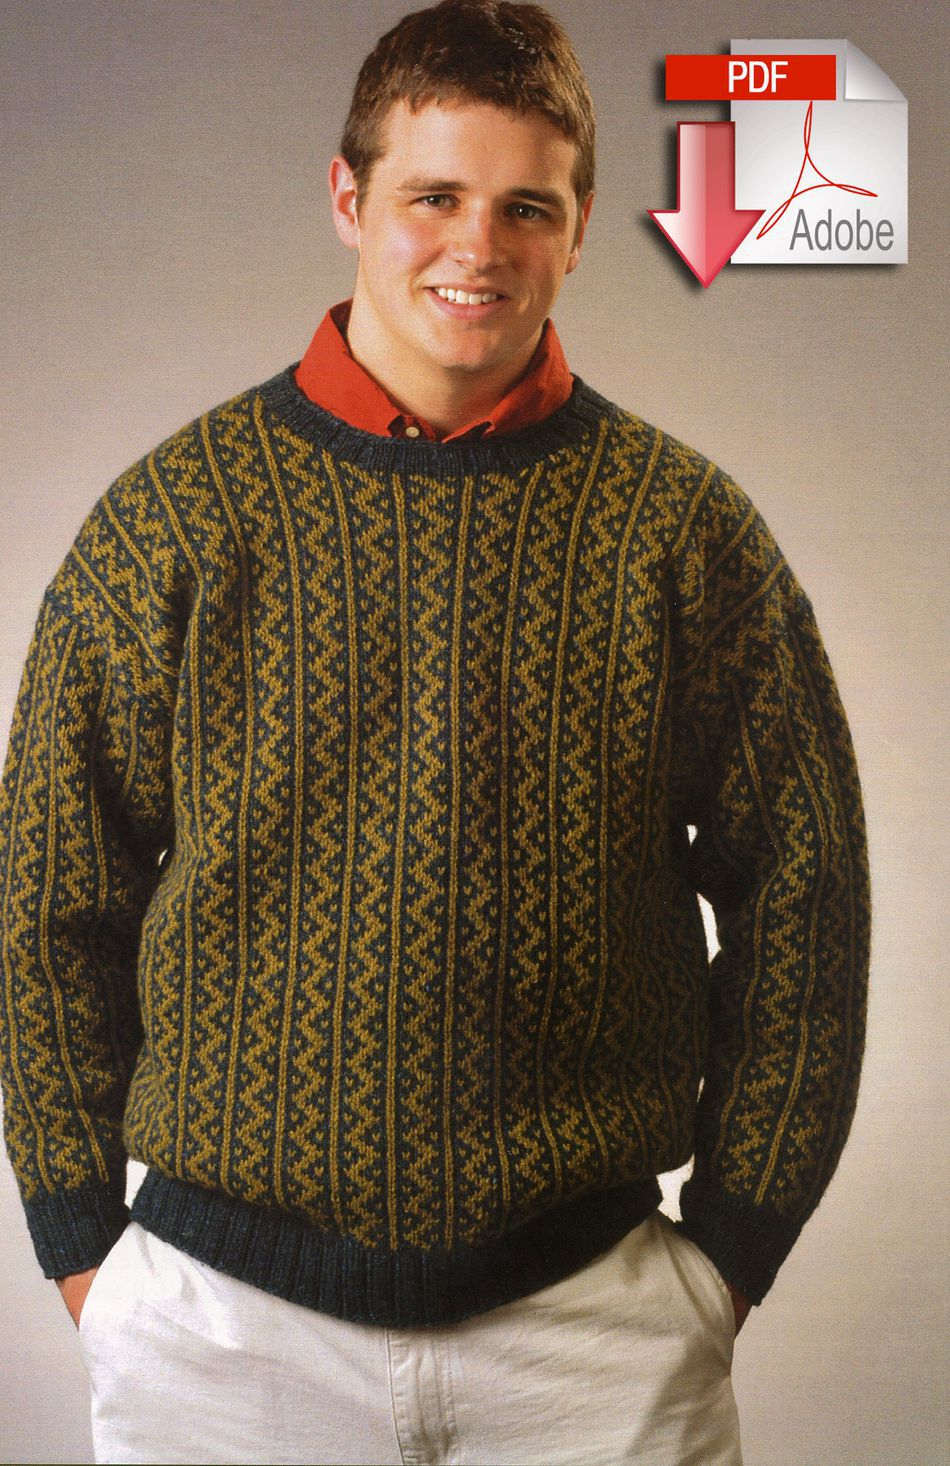 Knitting Patterns Highland Storm Pullover  Pattern download Harrisville Designs